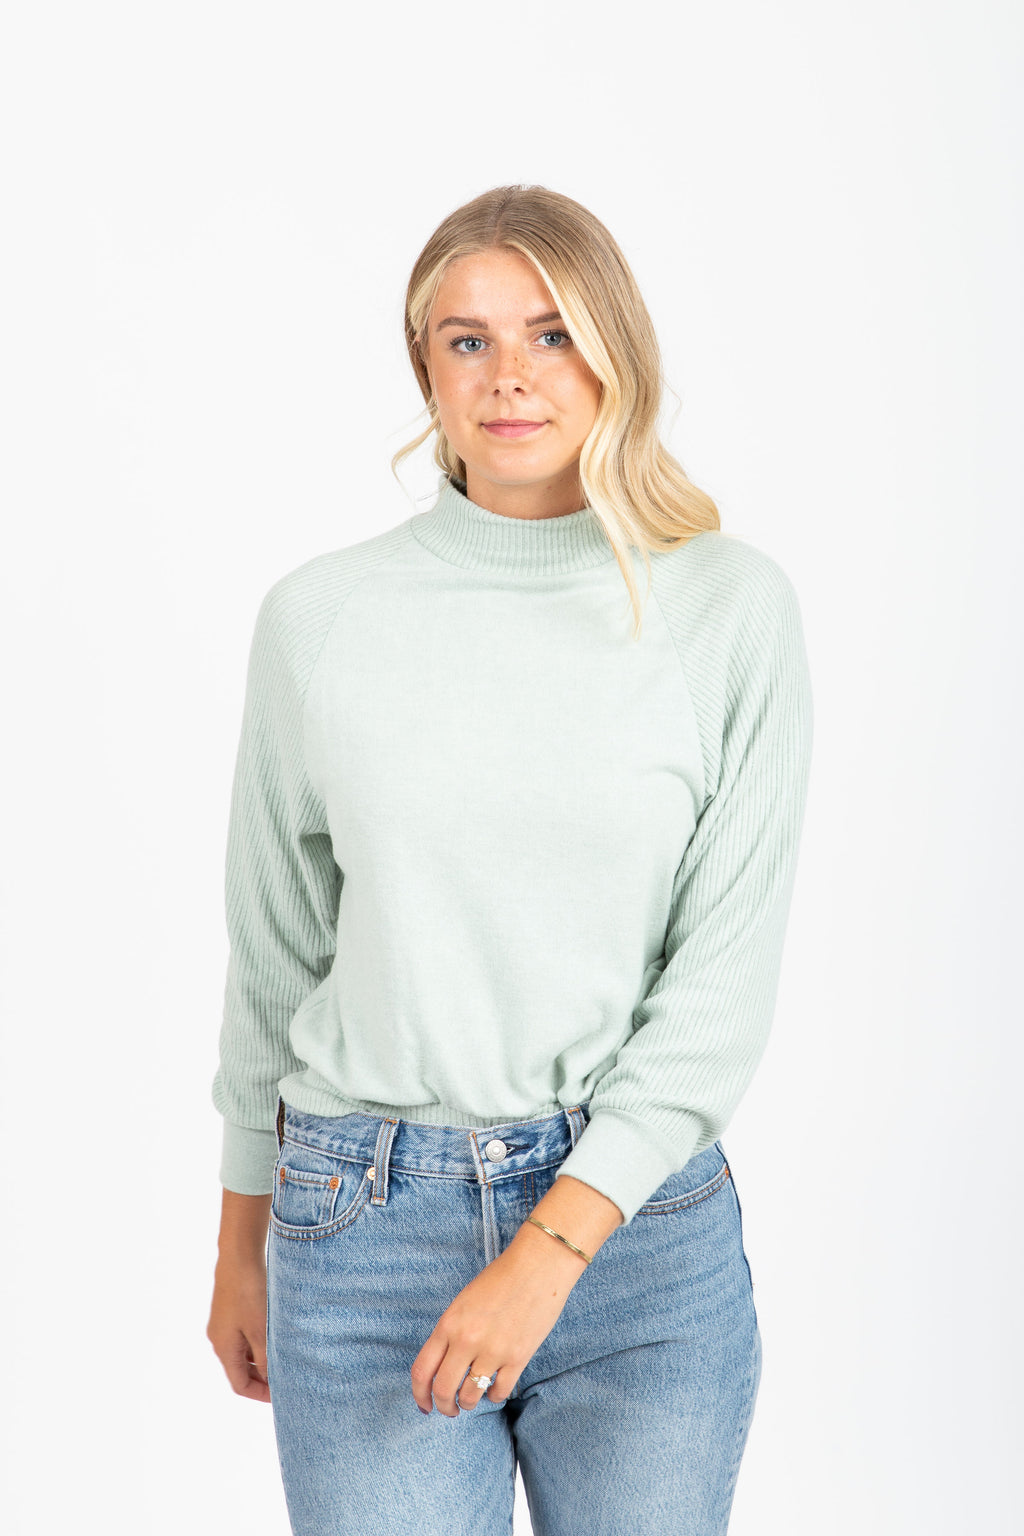 The Monday Soft Sweater in Mint